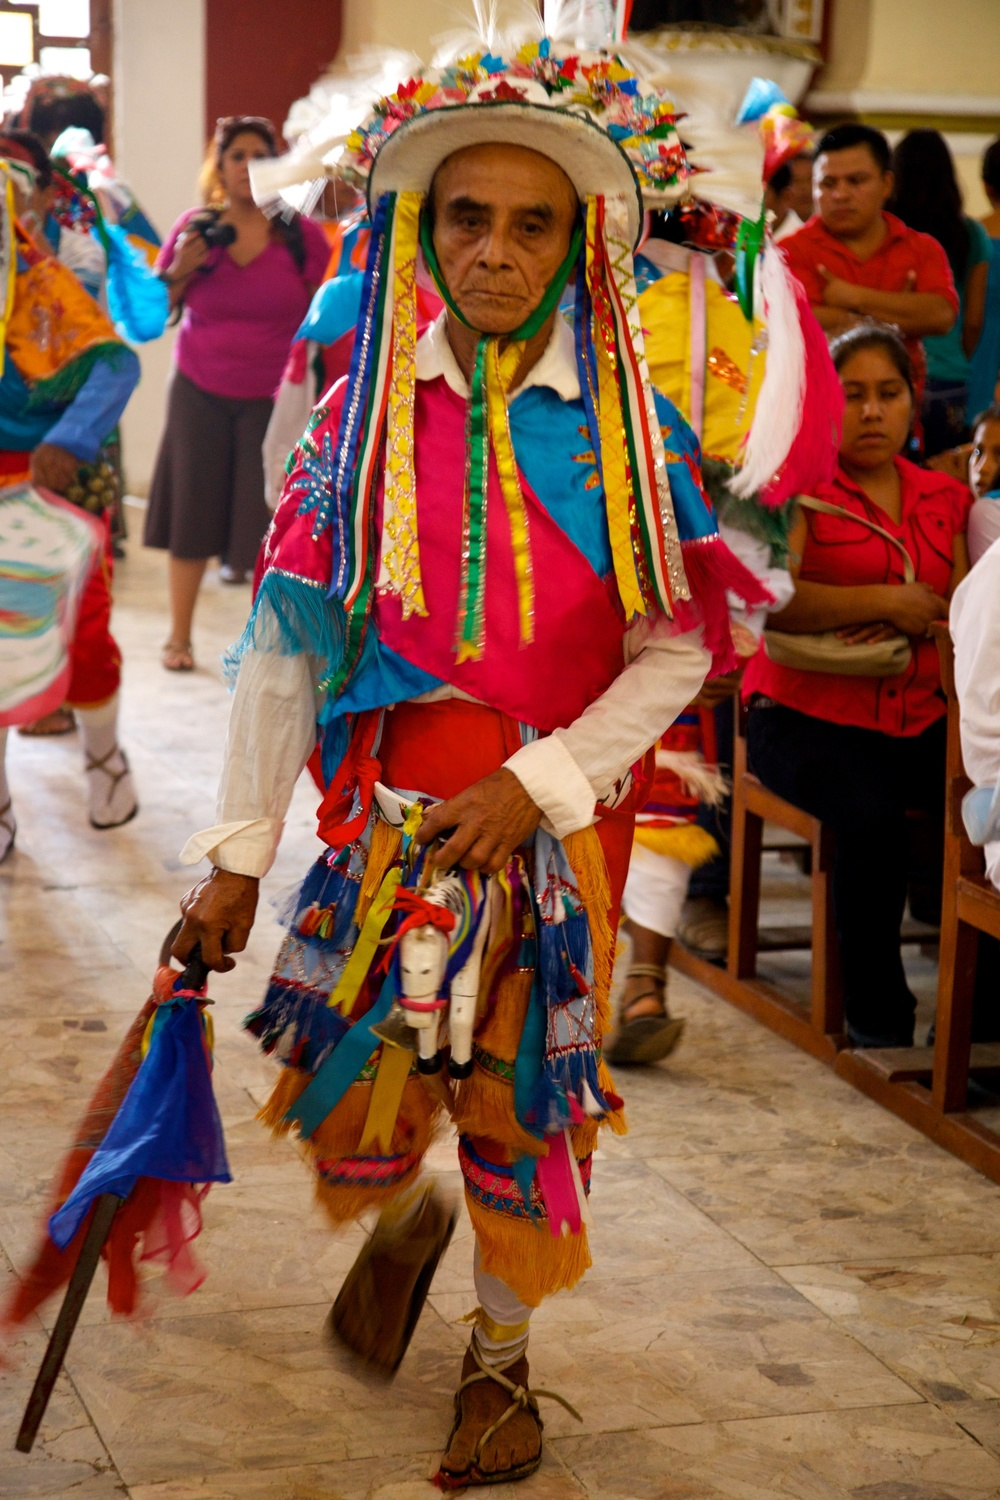 Ritual dance on October 4th. Cuetzalan, Mexico